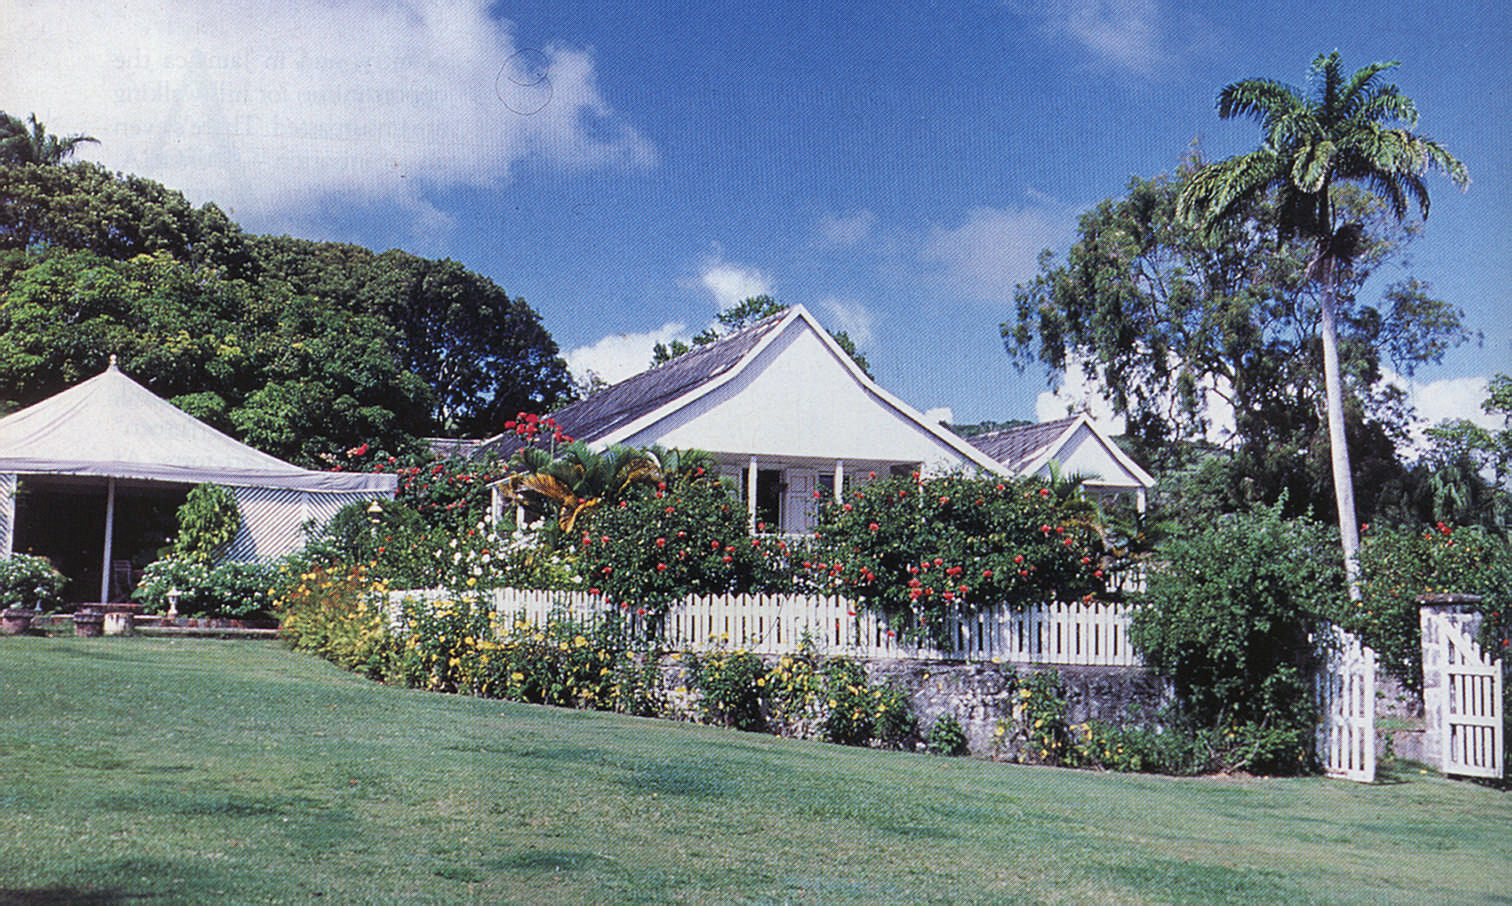 The White House hotel in St Kitts, once a plantation house. Photograph by Stephen Thorpe